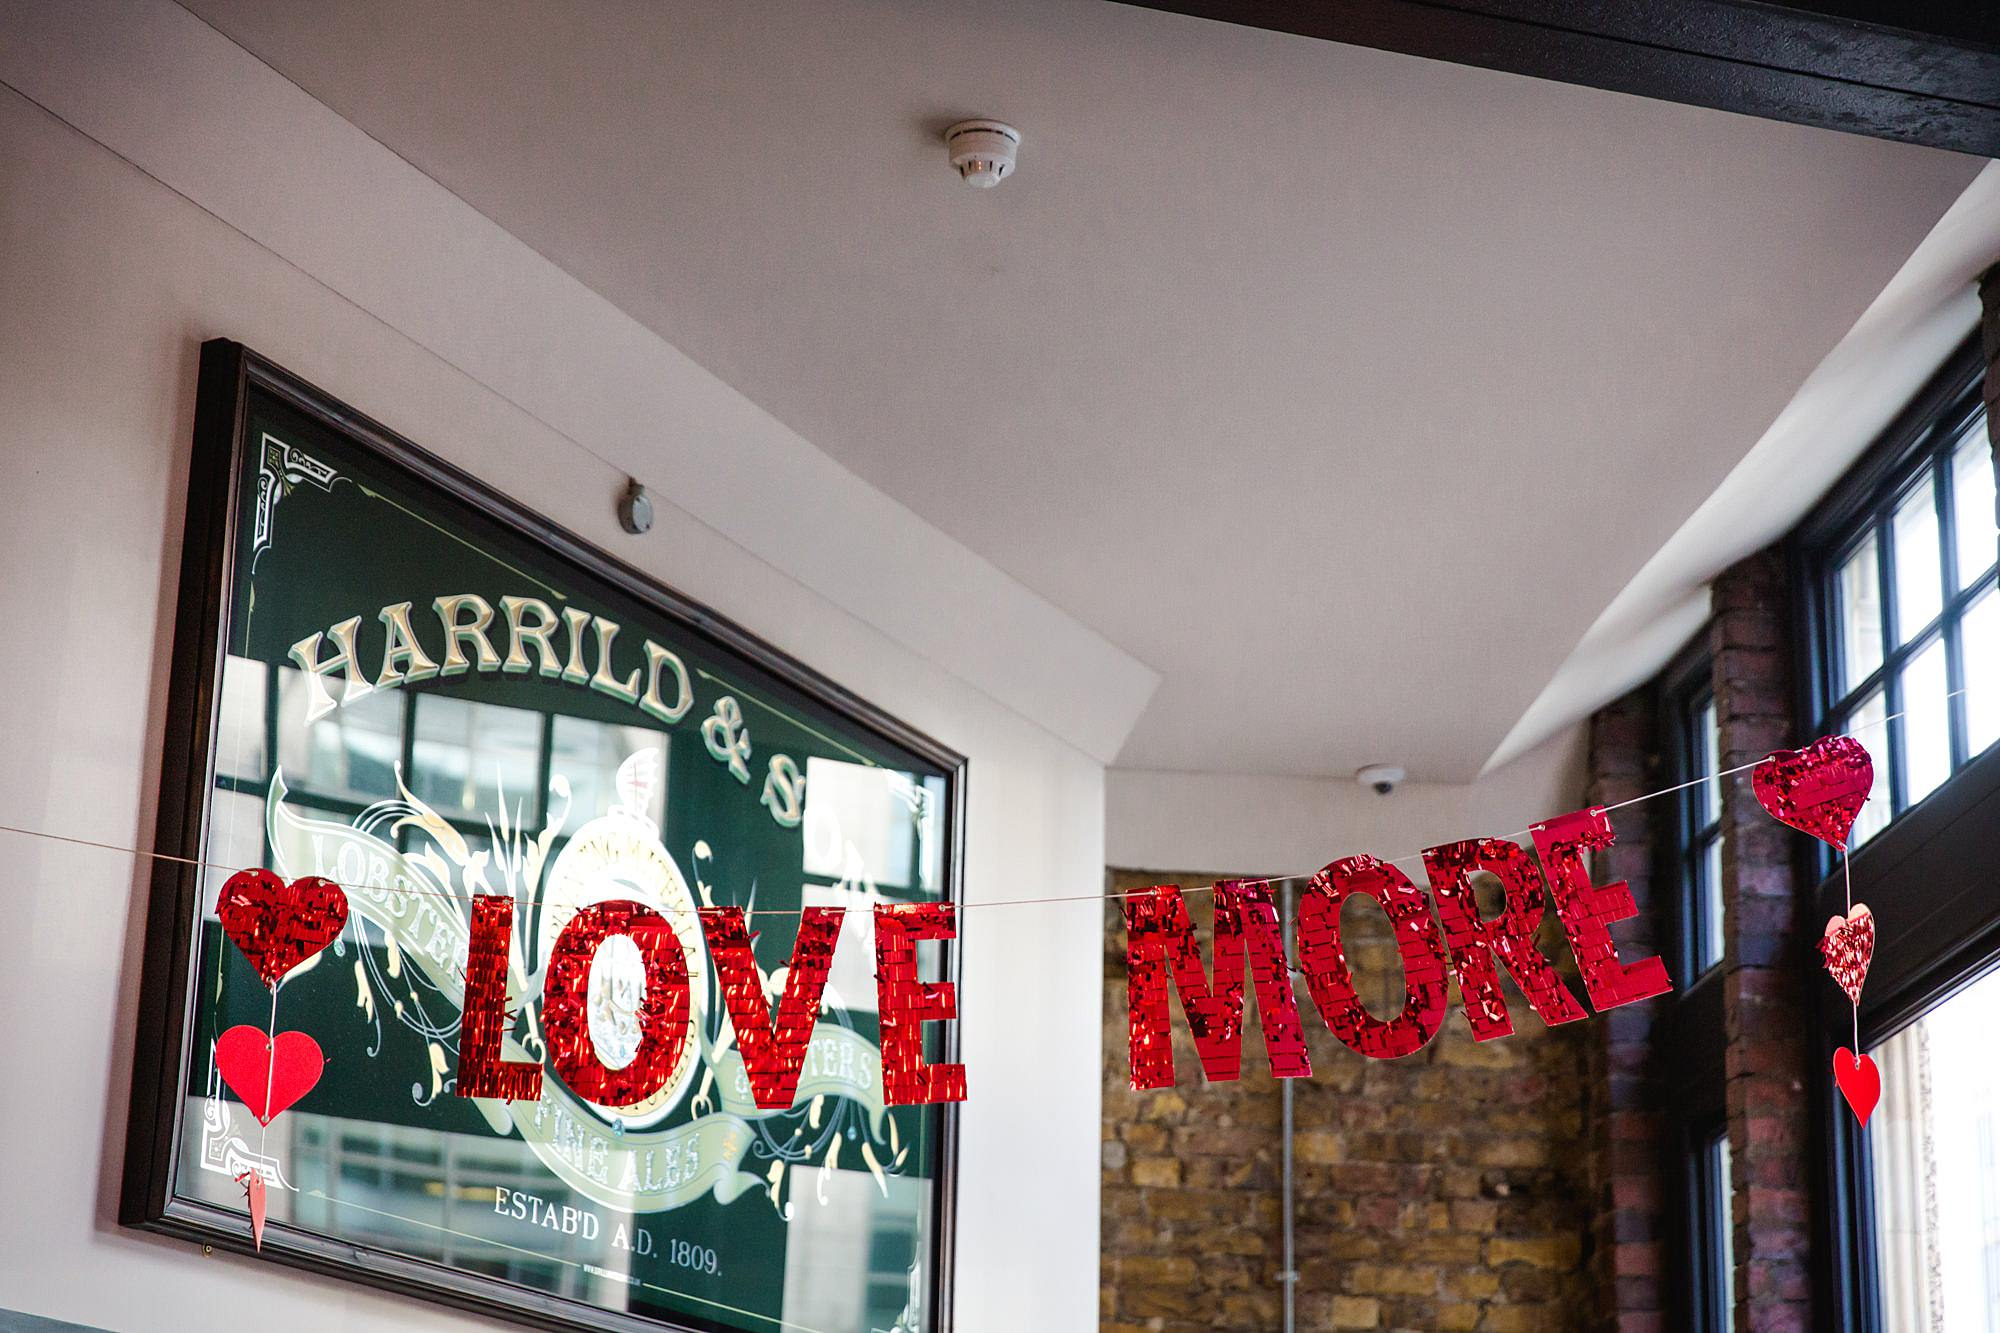 "Harrild and sons wedding ""love more"" wedding sign"